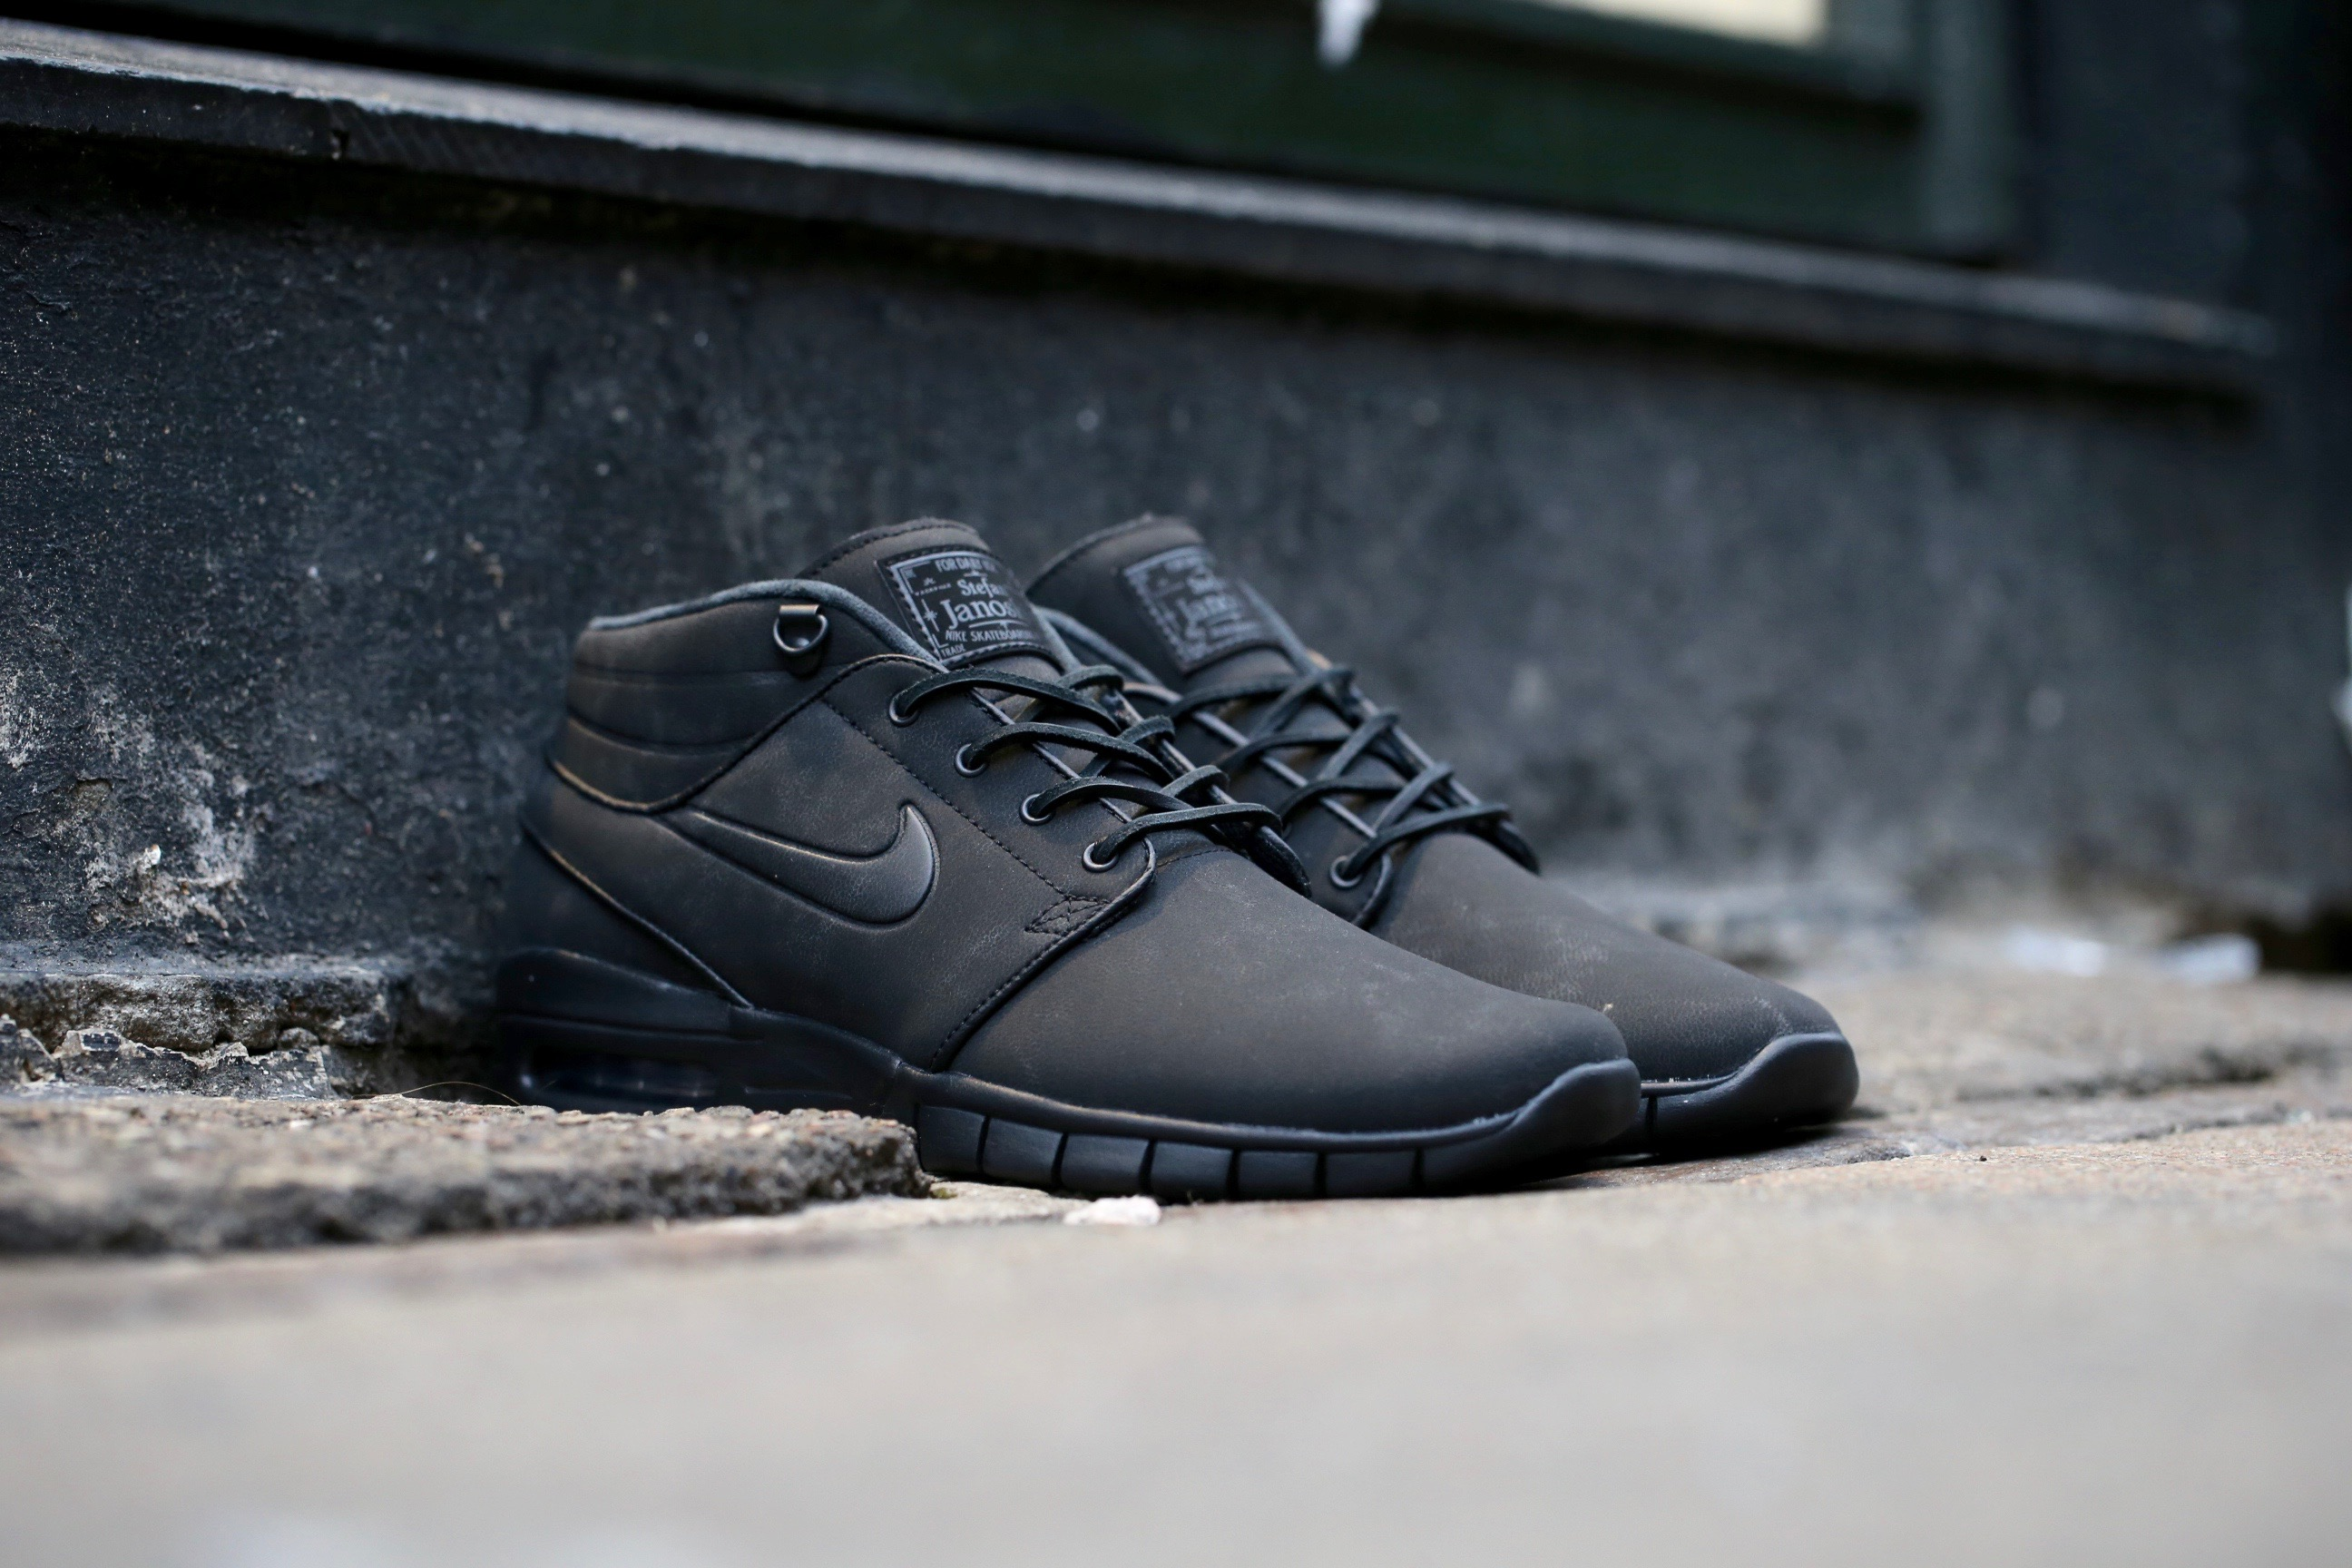 b9edf935a9b7 Welcome to Lakeview Comprehensive Dentistry. nike sb stefan janoski max mid  leather